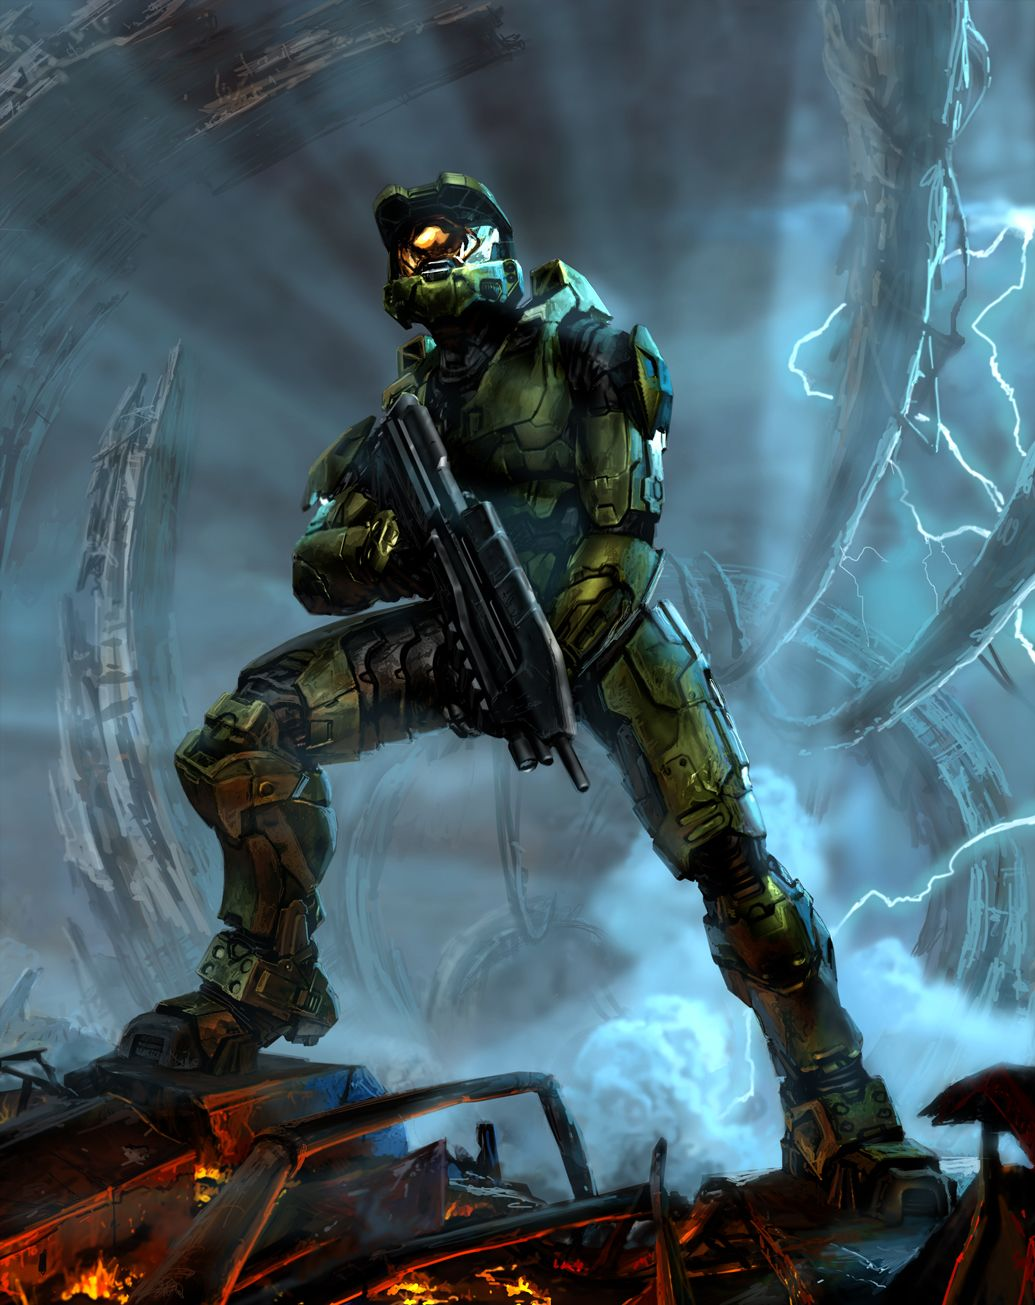 New Halo 3 Concept Art Released With Images Halo Video Game Halo Armor Halo